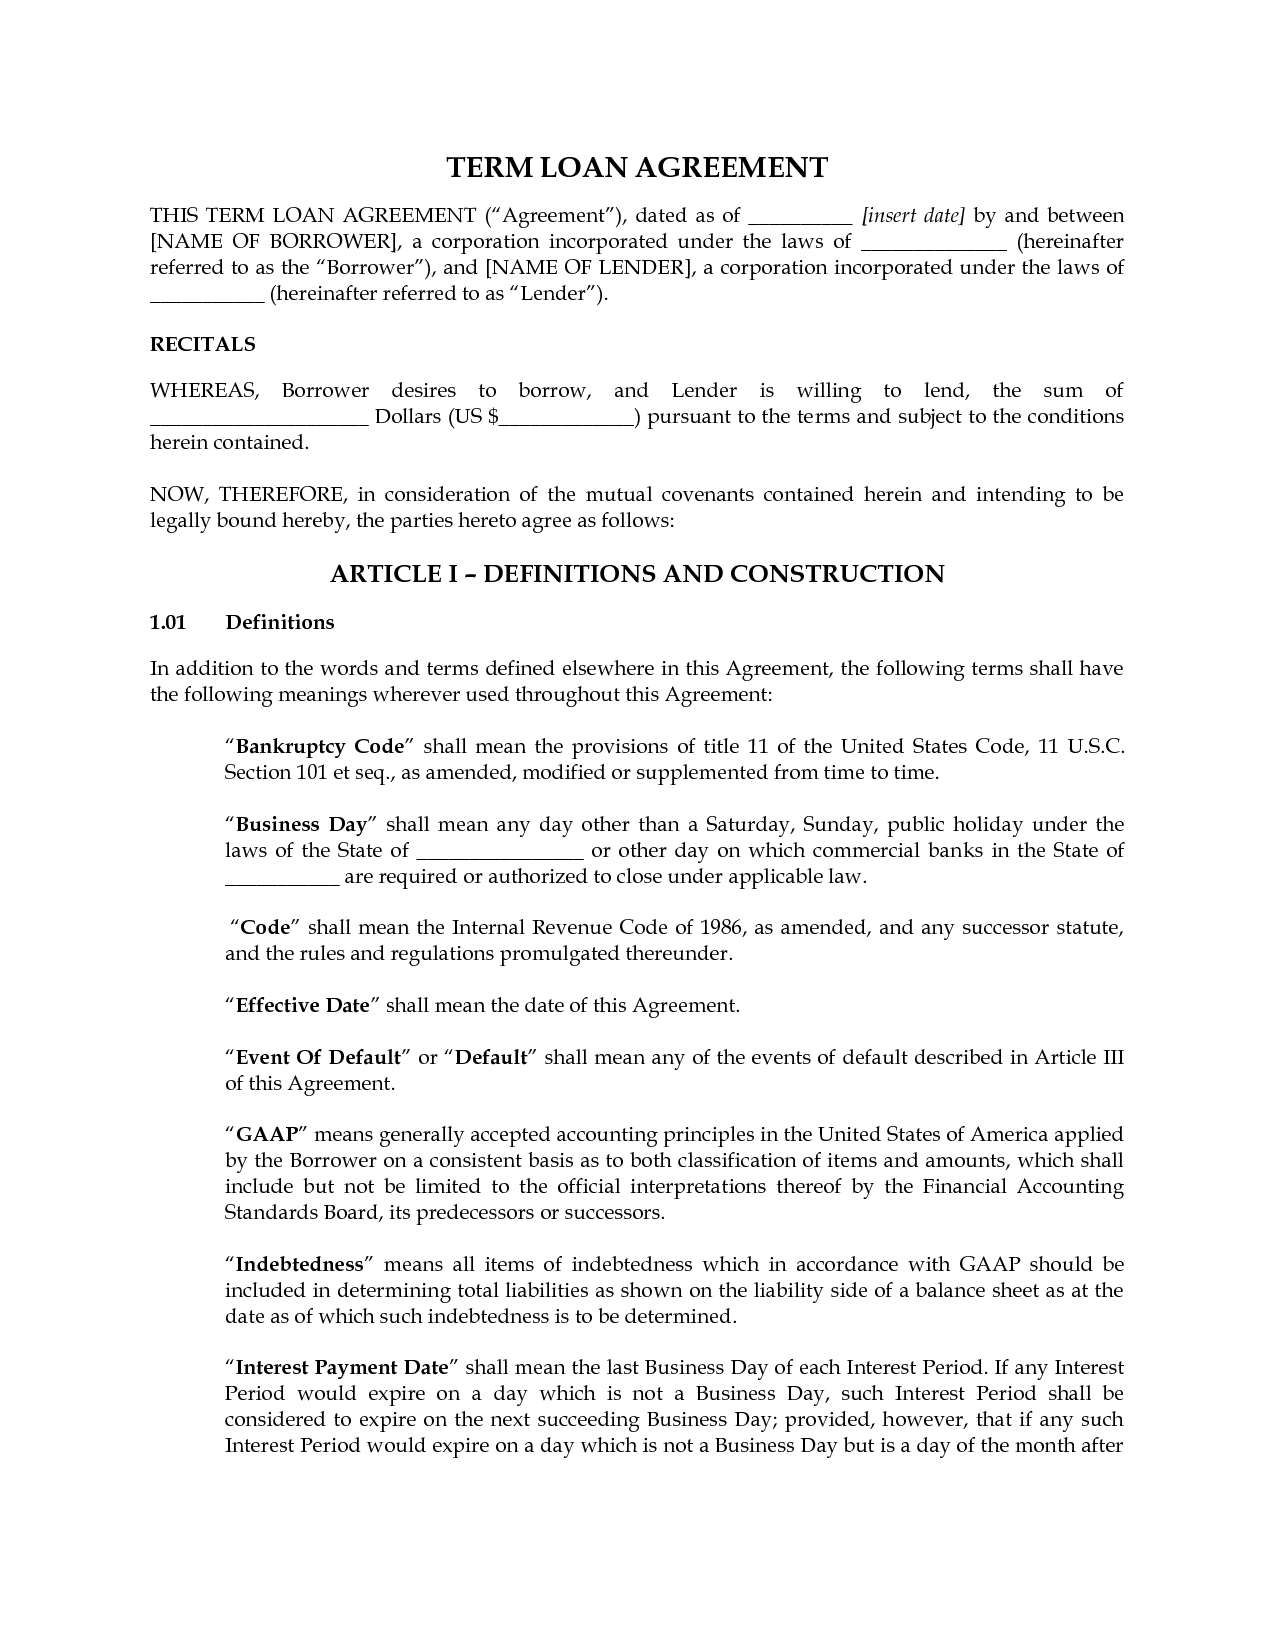 Personal Loan Contract Agreement Template Get My Free Video Tutorial Intended For Commercial Loan Agreement Template